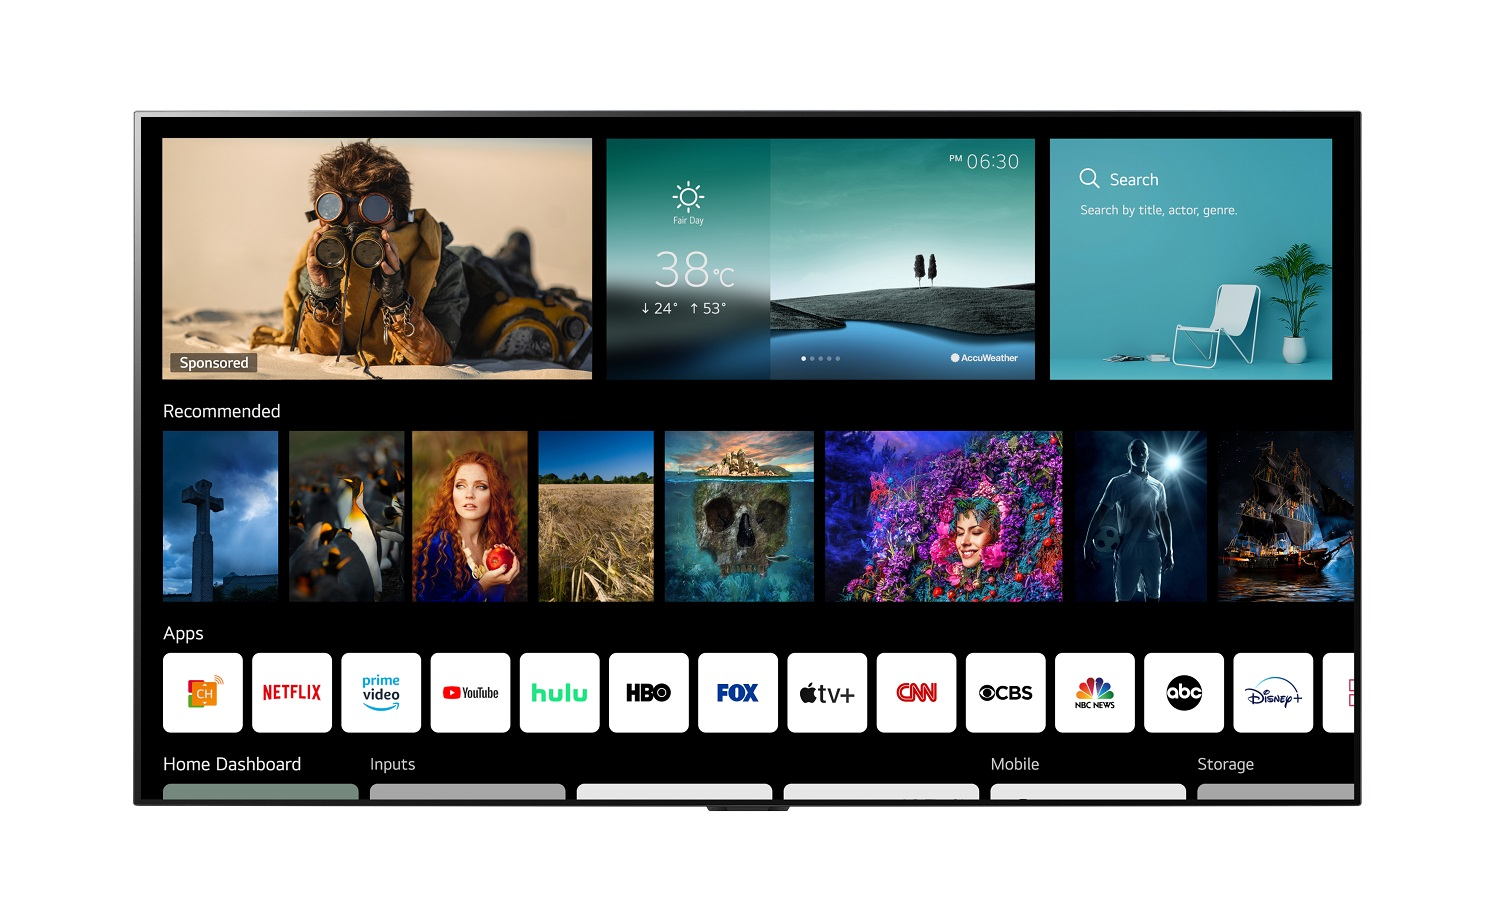 LG webOS 6.0 Smart TV Platfrom Designed for How Viewers Consume Content Today